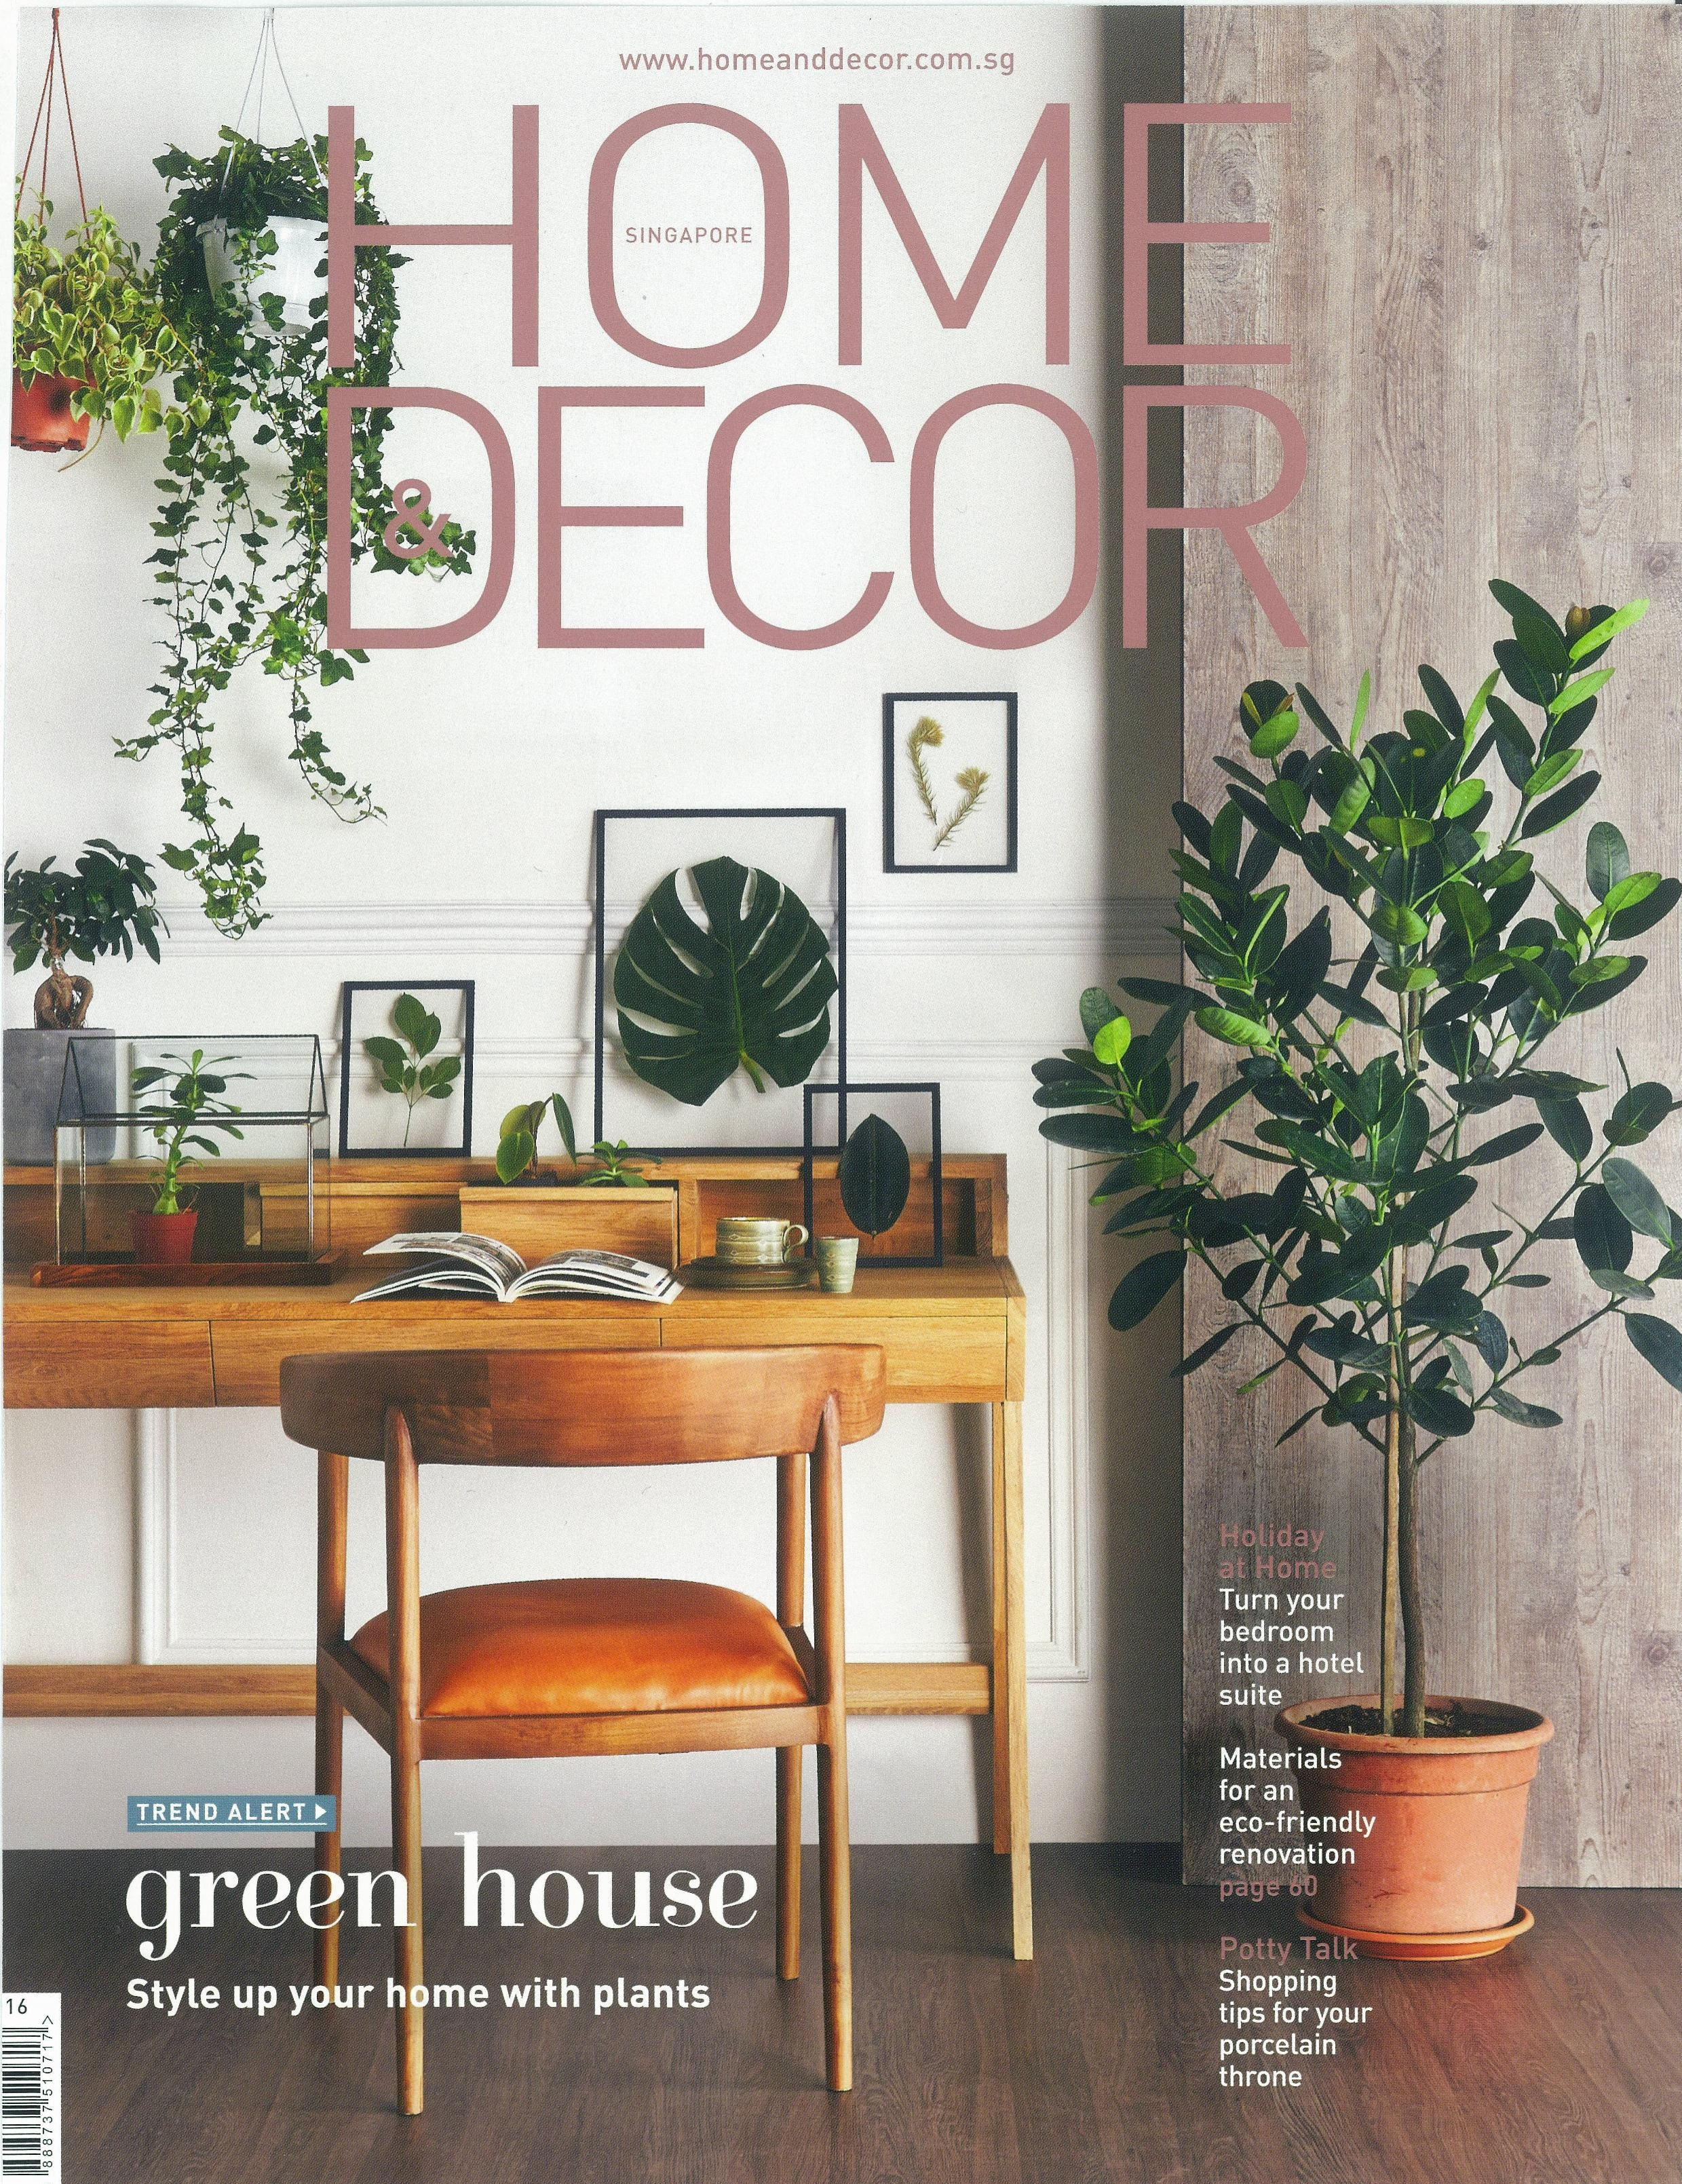 5 - Home & Decor February 2017-page-001.jpg